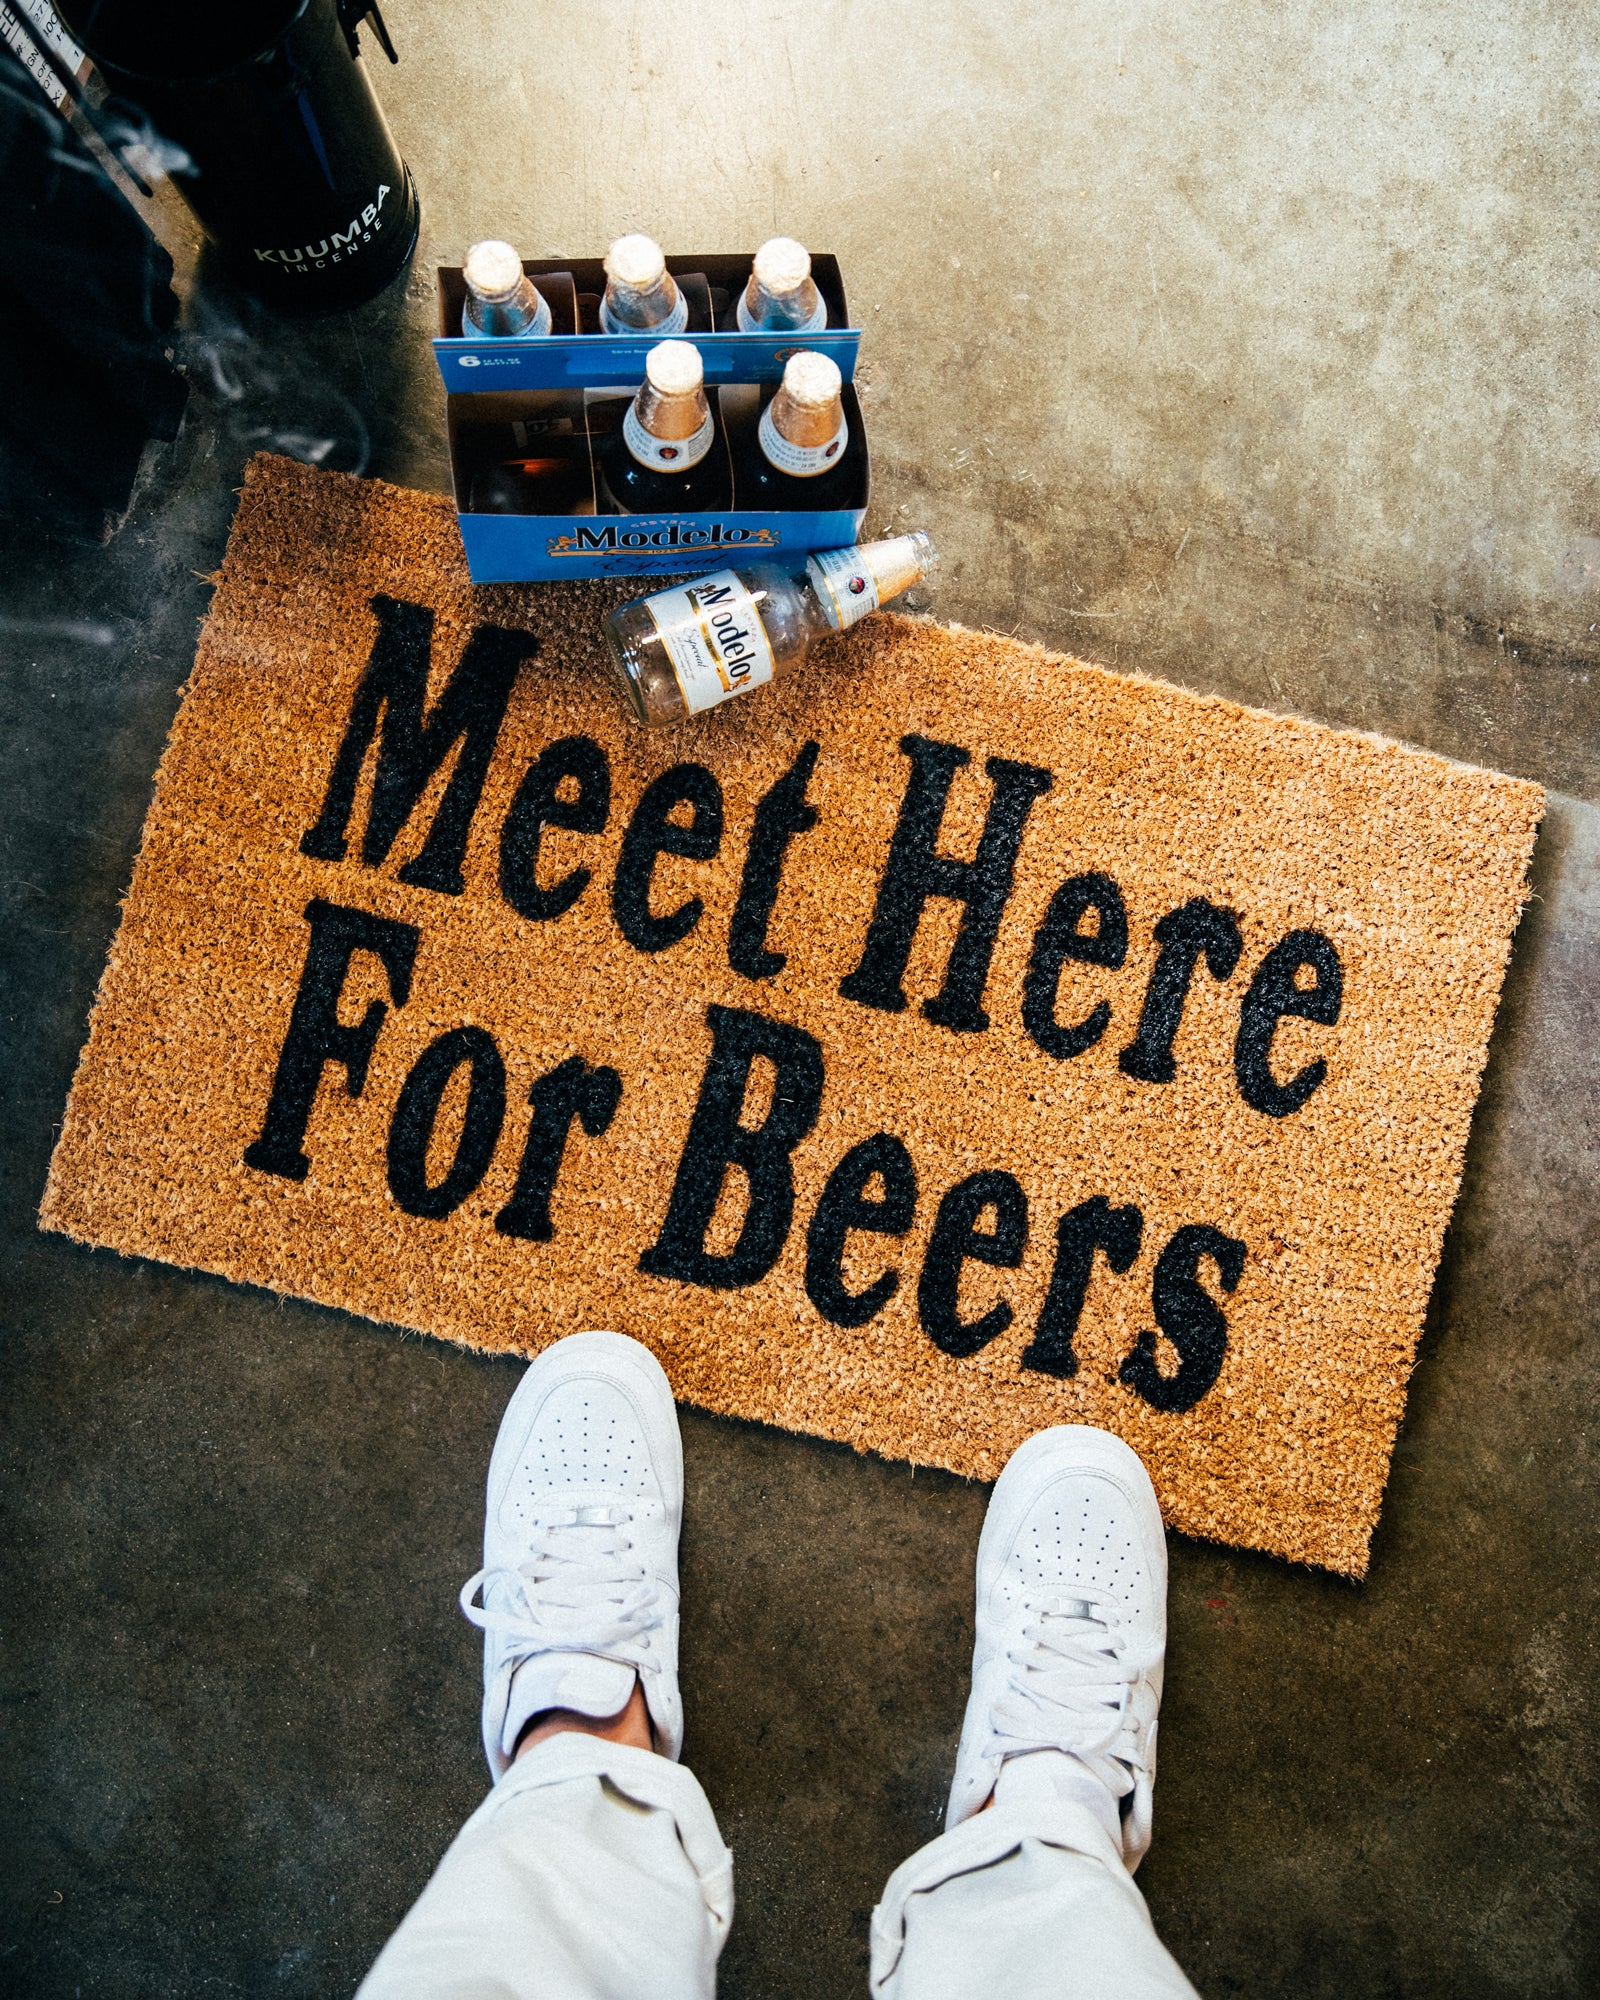 Meet Here For Beers Doormat